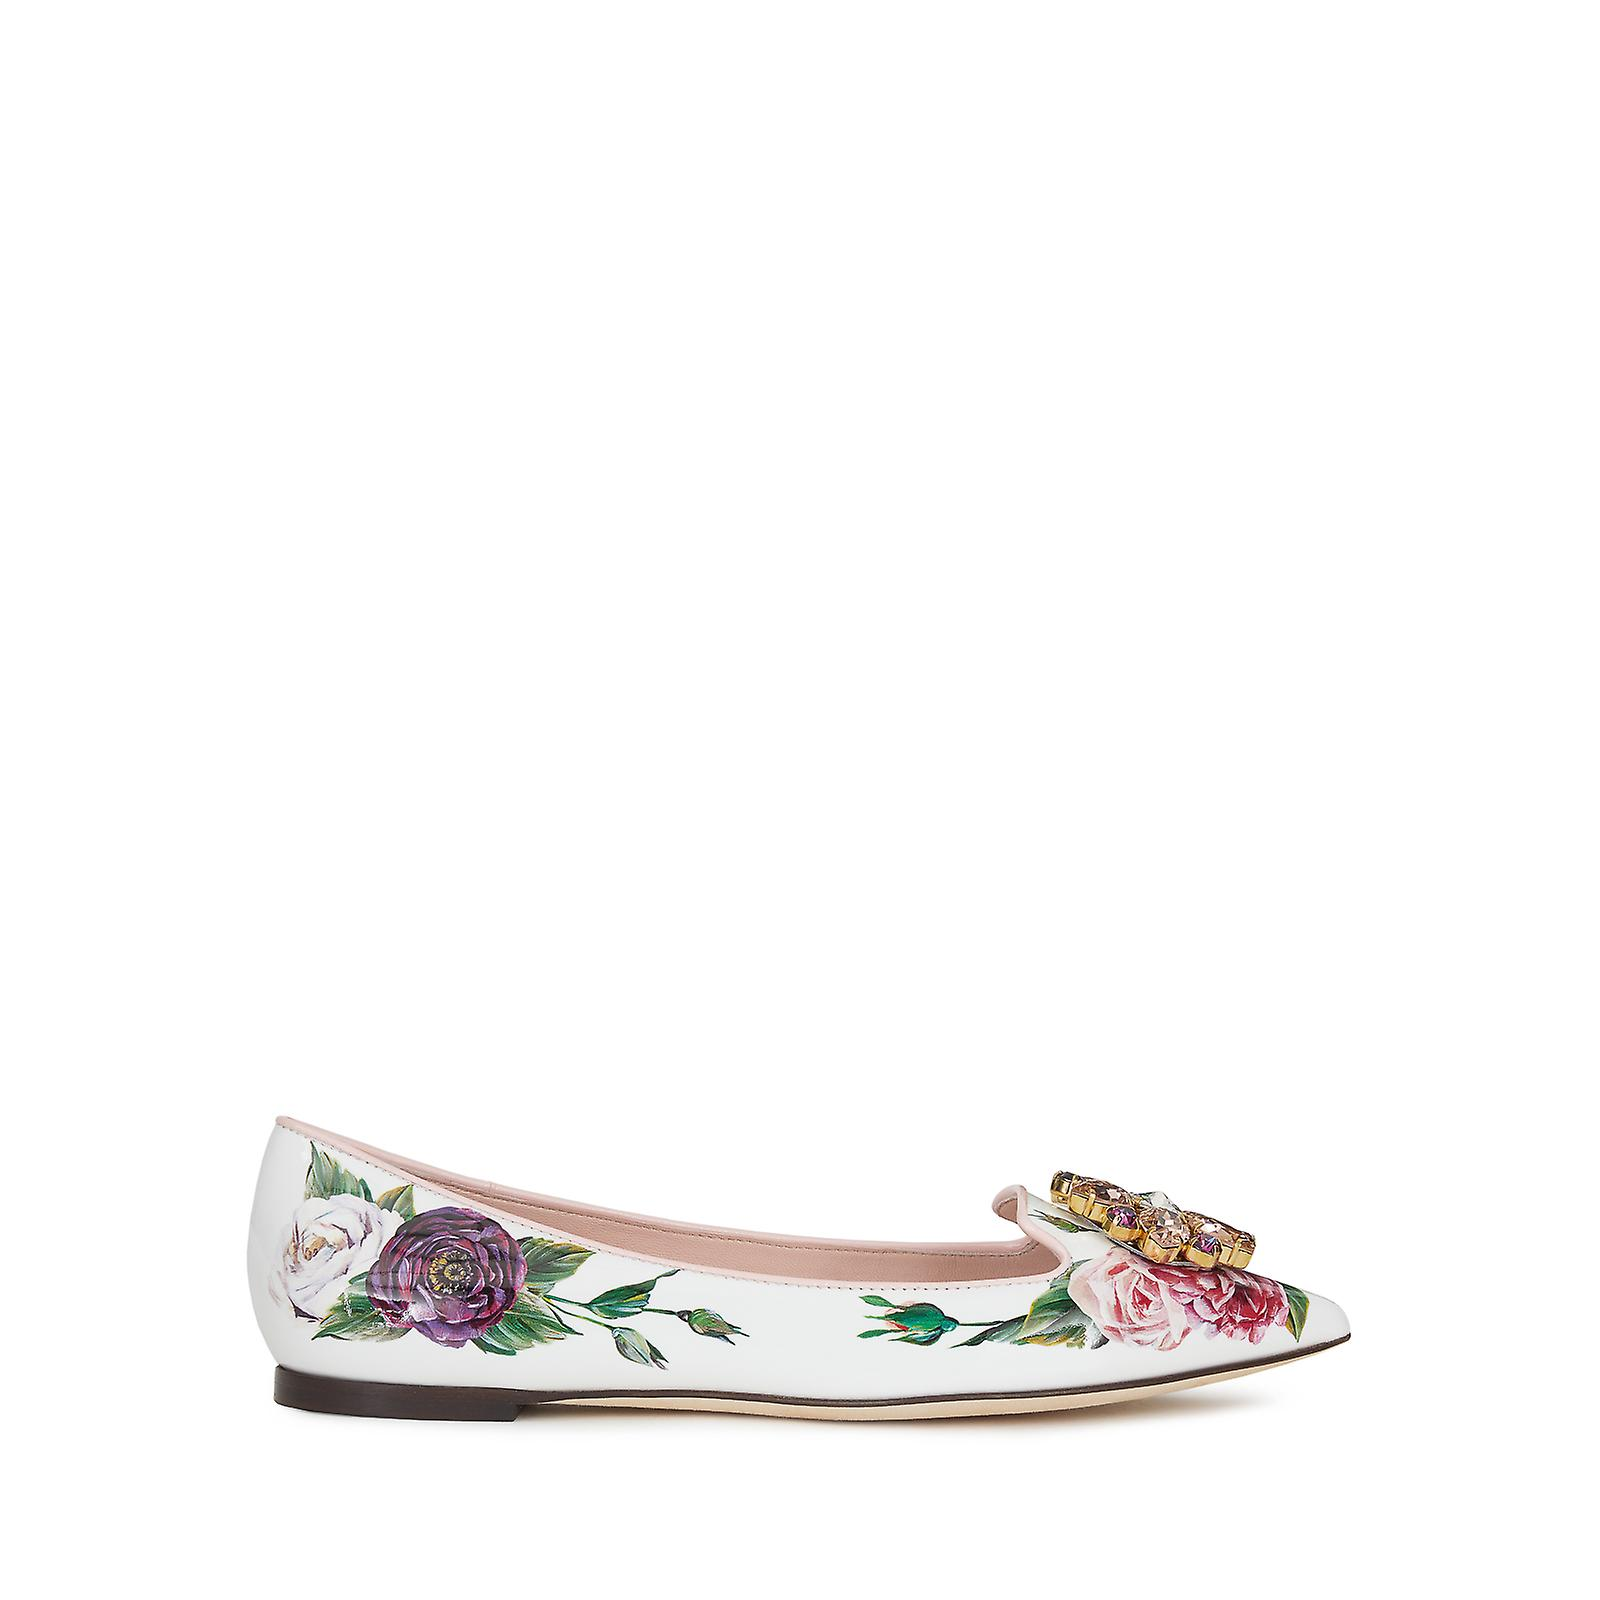 Dolce & Gabbana Pointed Slippers In Floral Printed Patent Leather seqLp